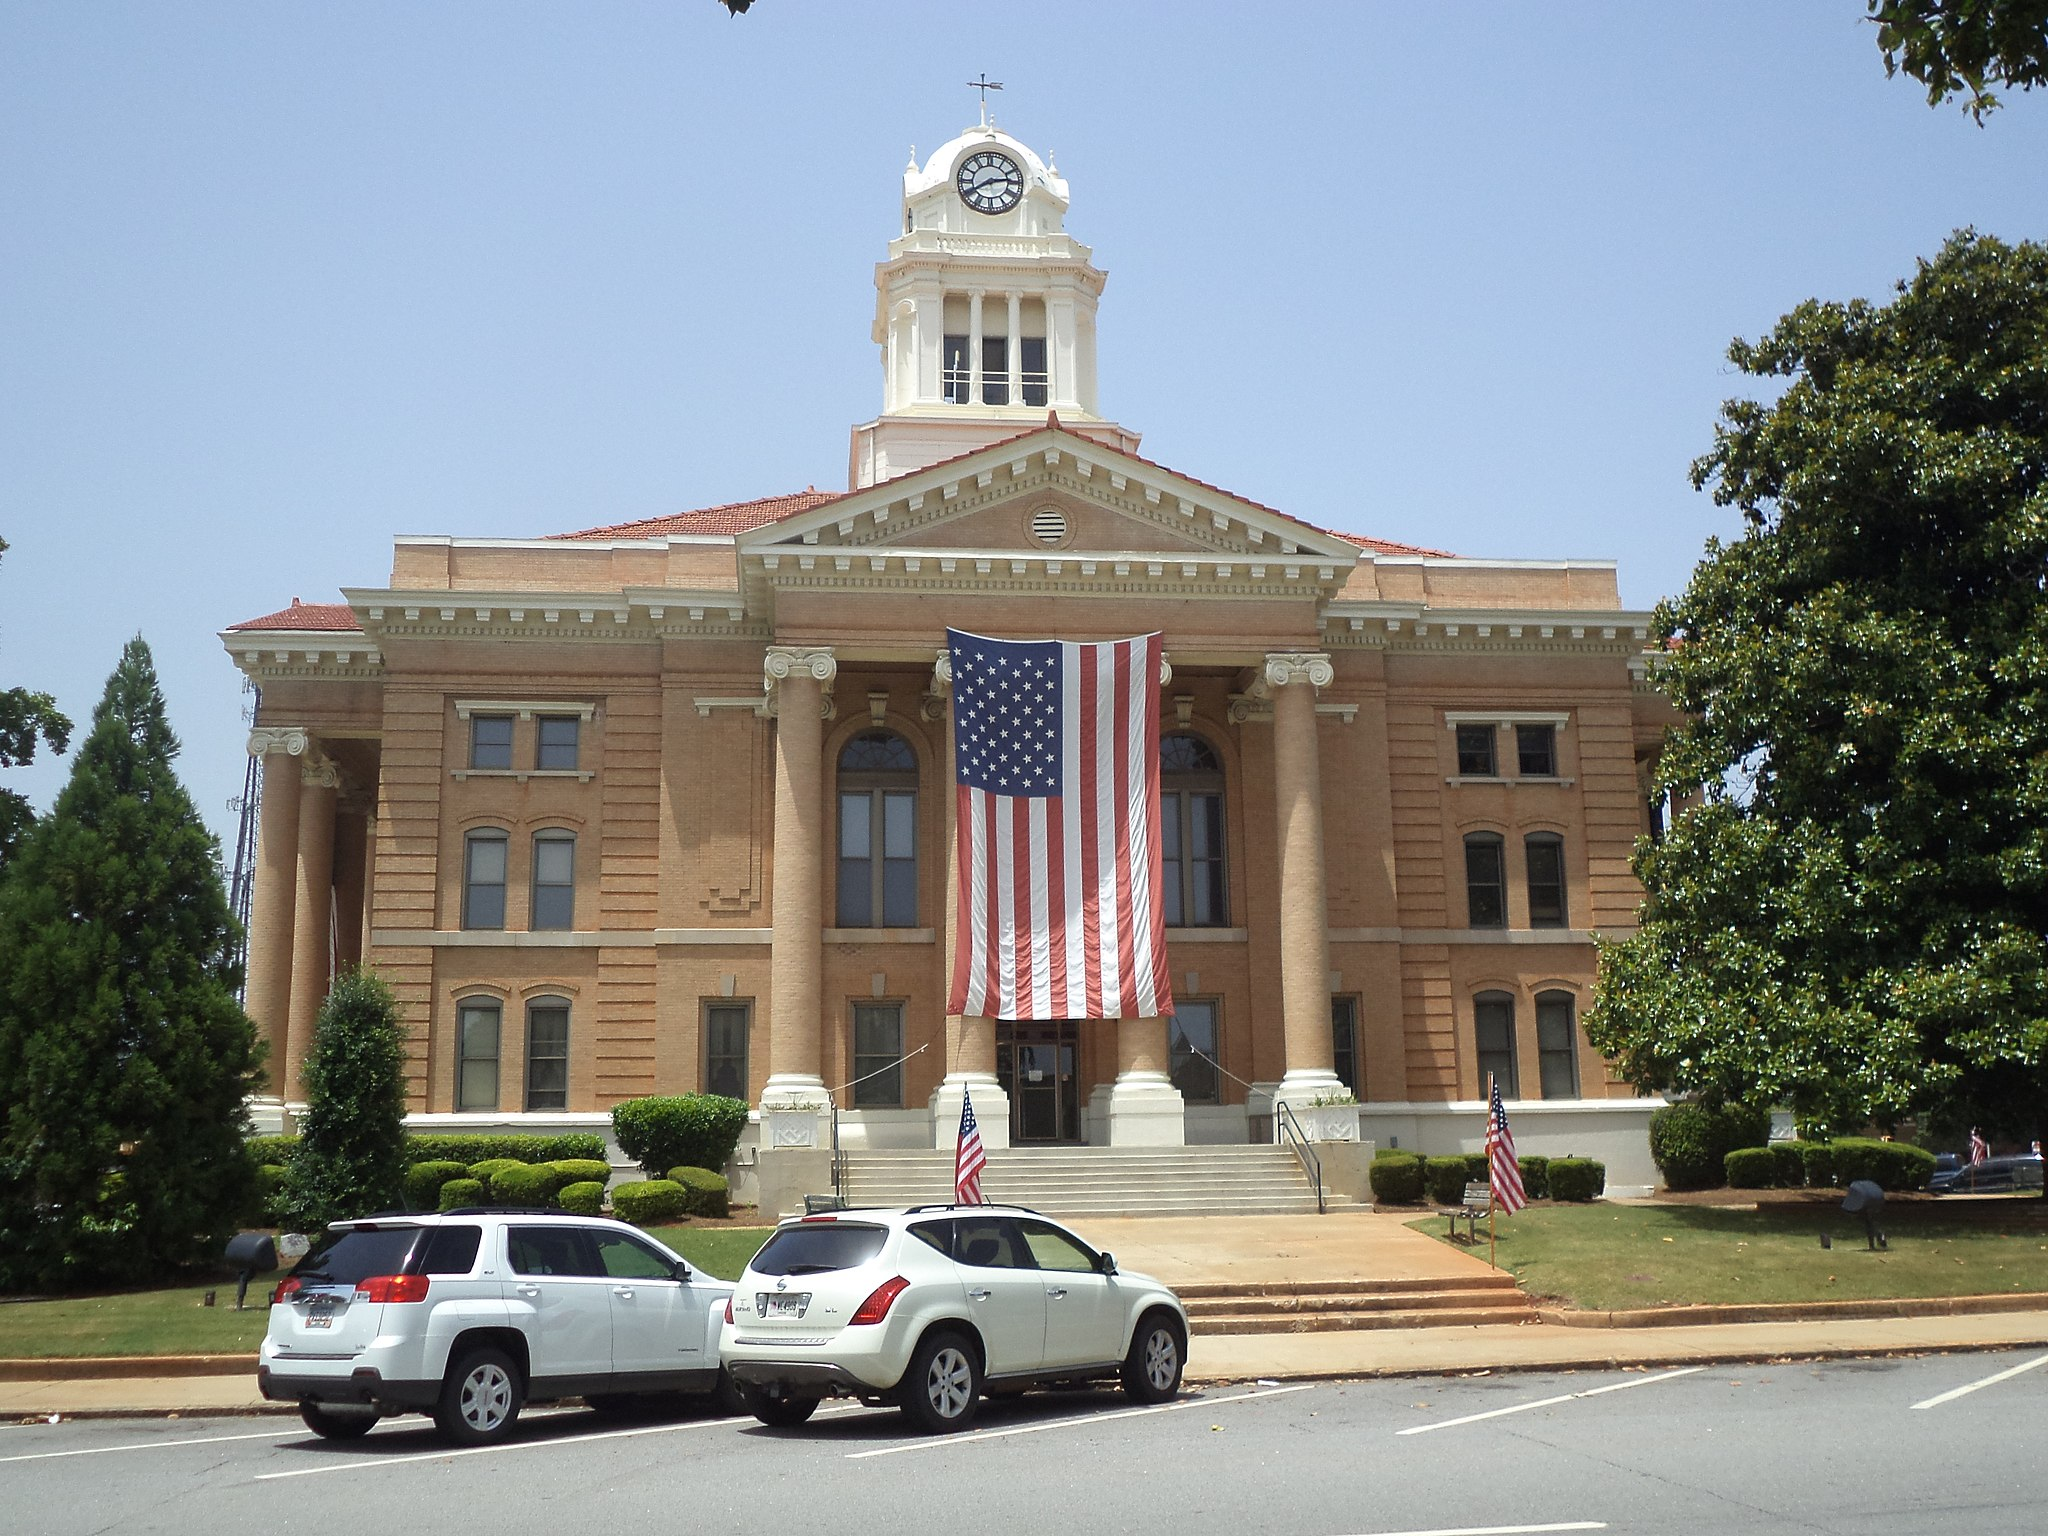 Upson County Courthouse (South face)